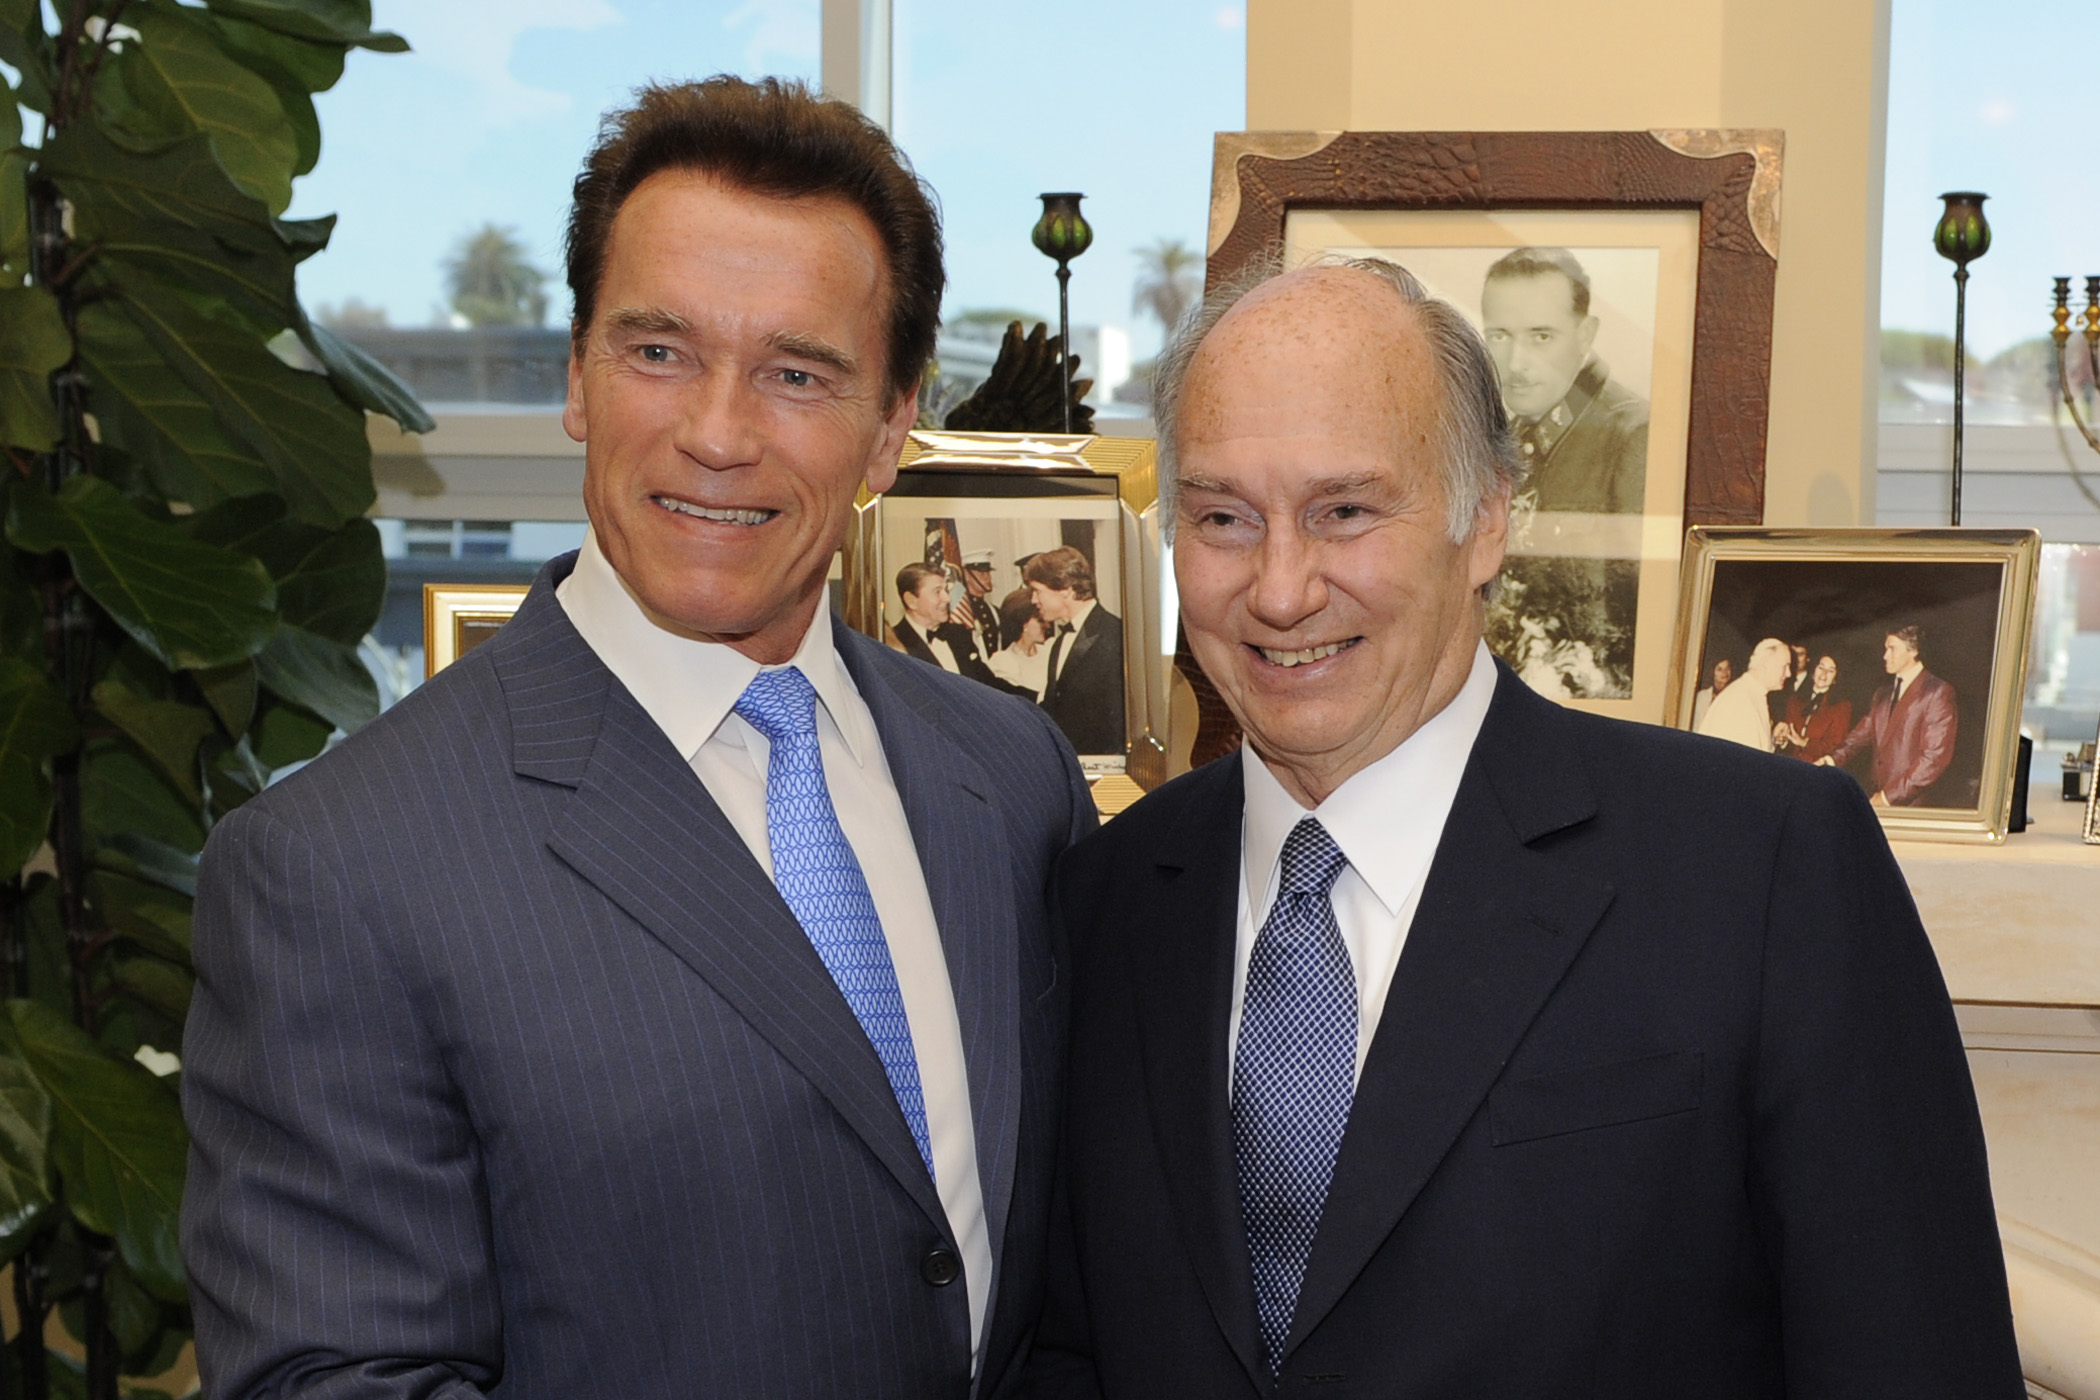 Mawlana Hazar Imam and Governor Arnold Schwarzenegger at the Governor`s private office in Santa Monica, California. Photo: Gary Otte